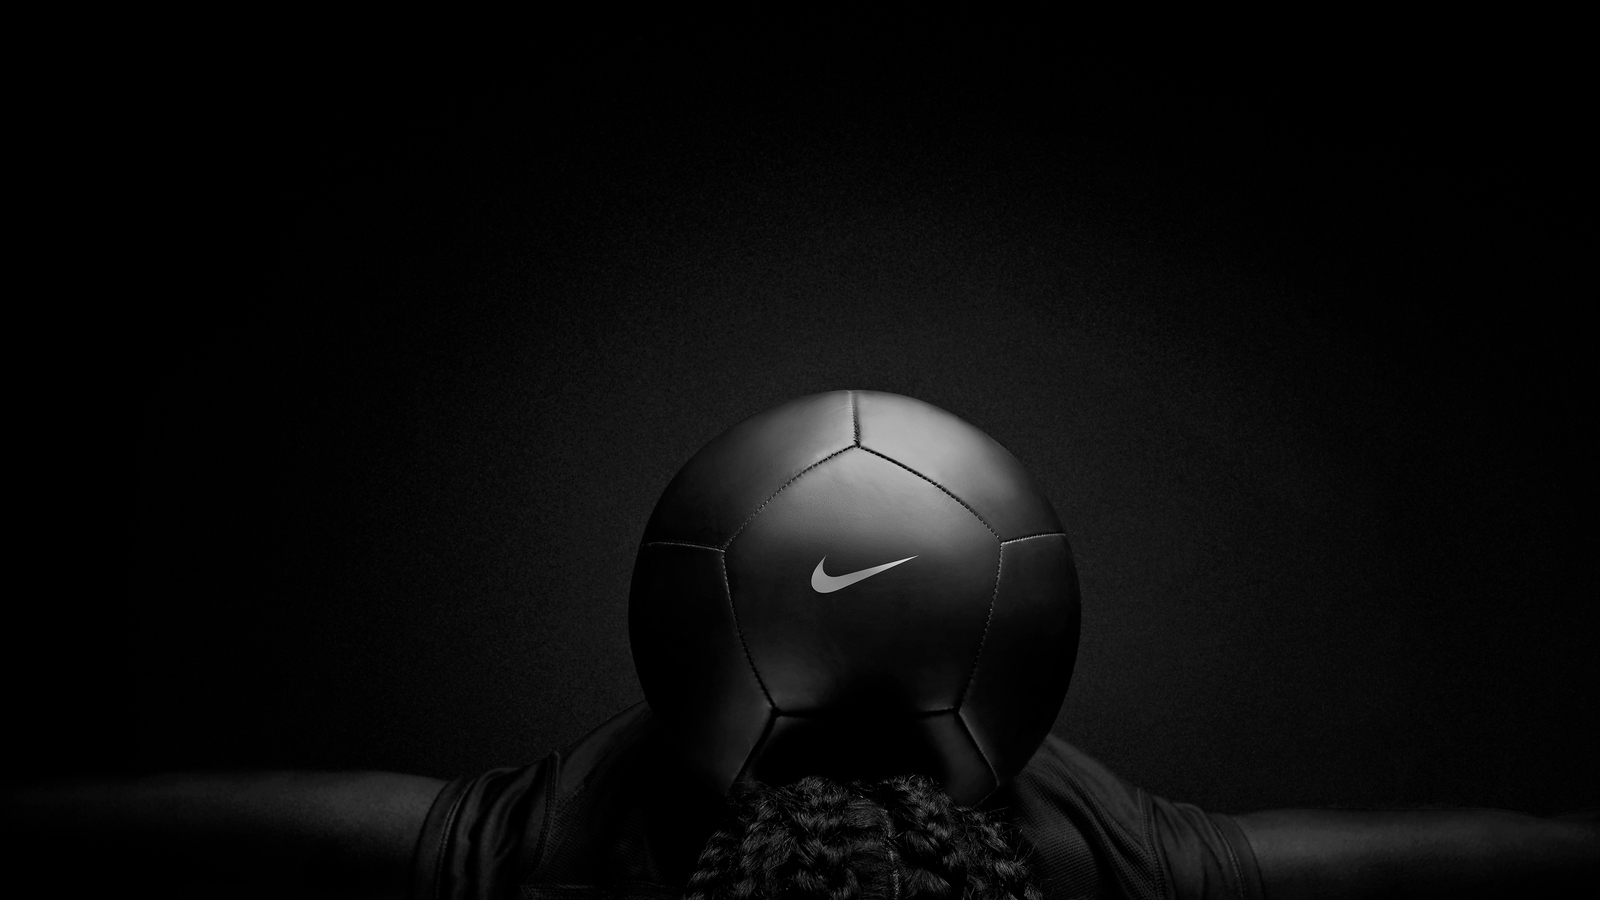 nike-black-play-football-ev.jpg